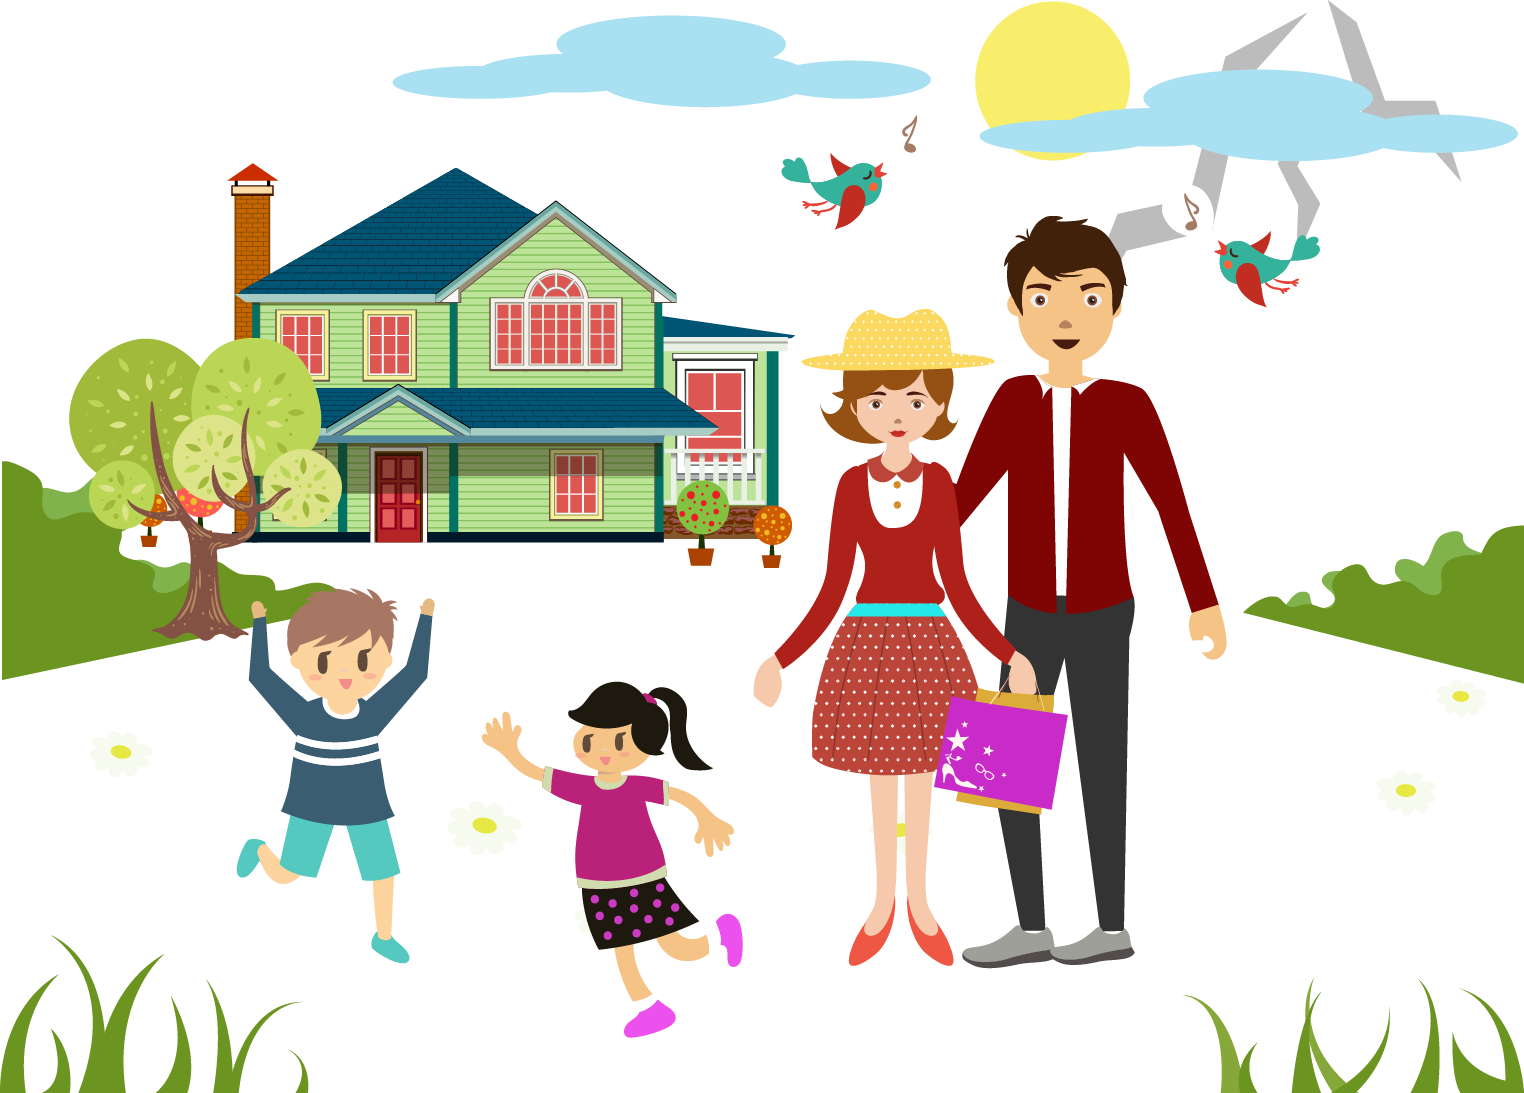 banner freeuse download Family Happiness Drawing Illustration